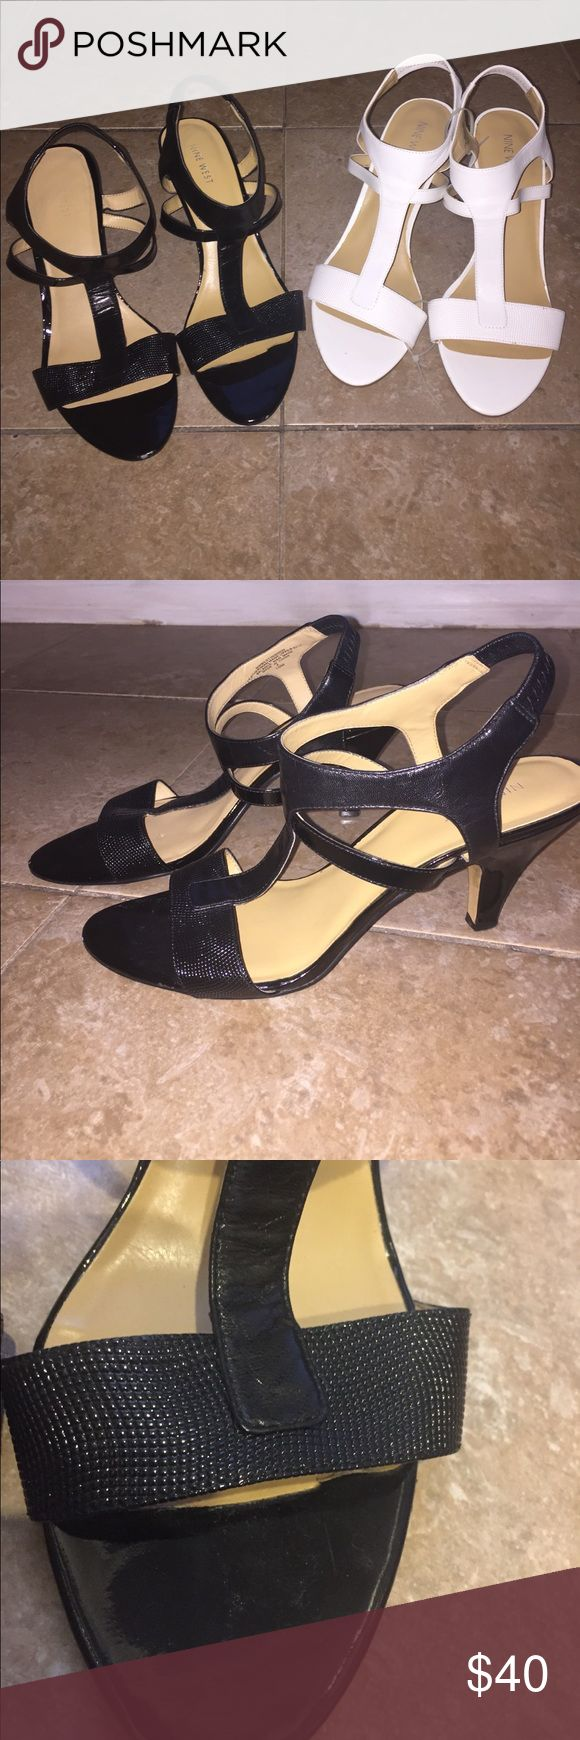 NINE WEST Heels Sz 10. **Two Pairs** White & Black NINE WEST Heels. **Two Pairs** Size 10. White are NWOT - never worn. Black are lovely.  Great for work or with dresses. $40 OBO Nine West Shoes Heels